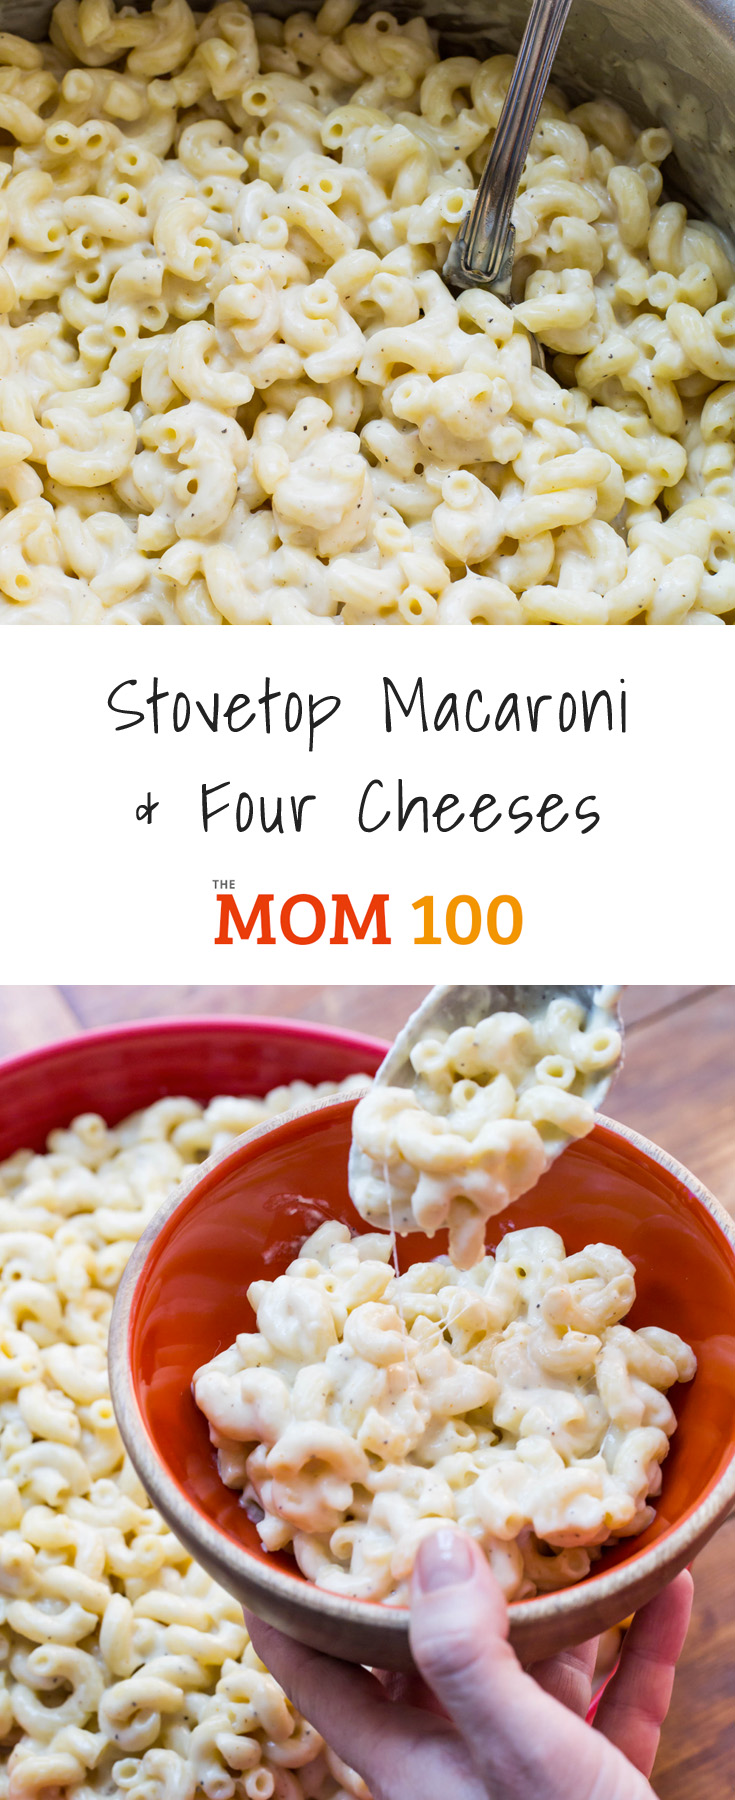 Nothing is more delicious or satisfying than making this Stovetop Macaroni and Four Cheeses dish, and it's really, truly, and surprisingly easy.